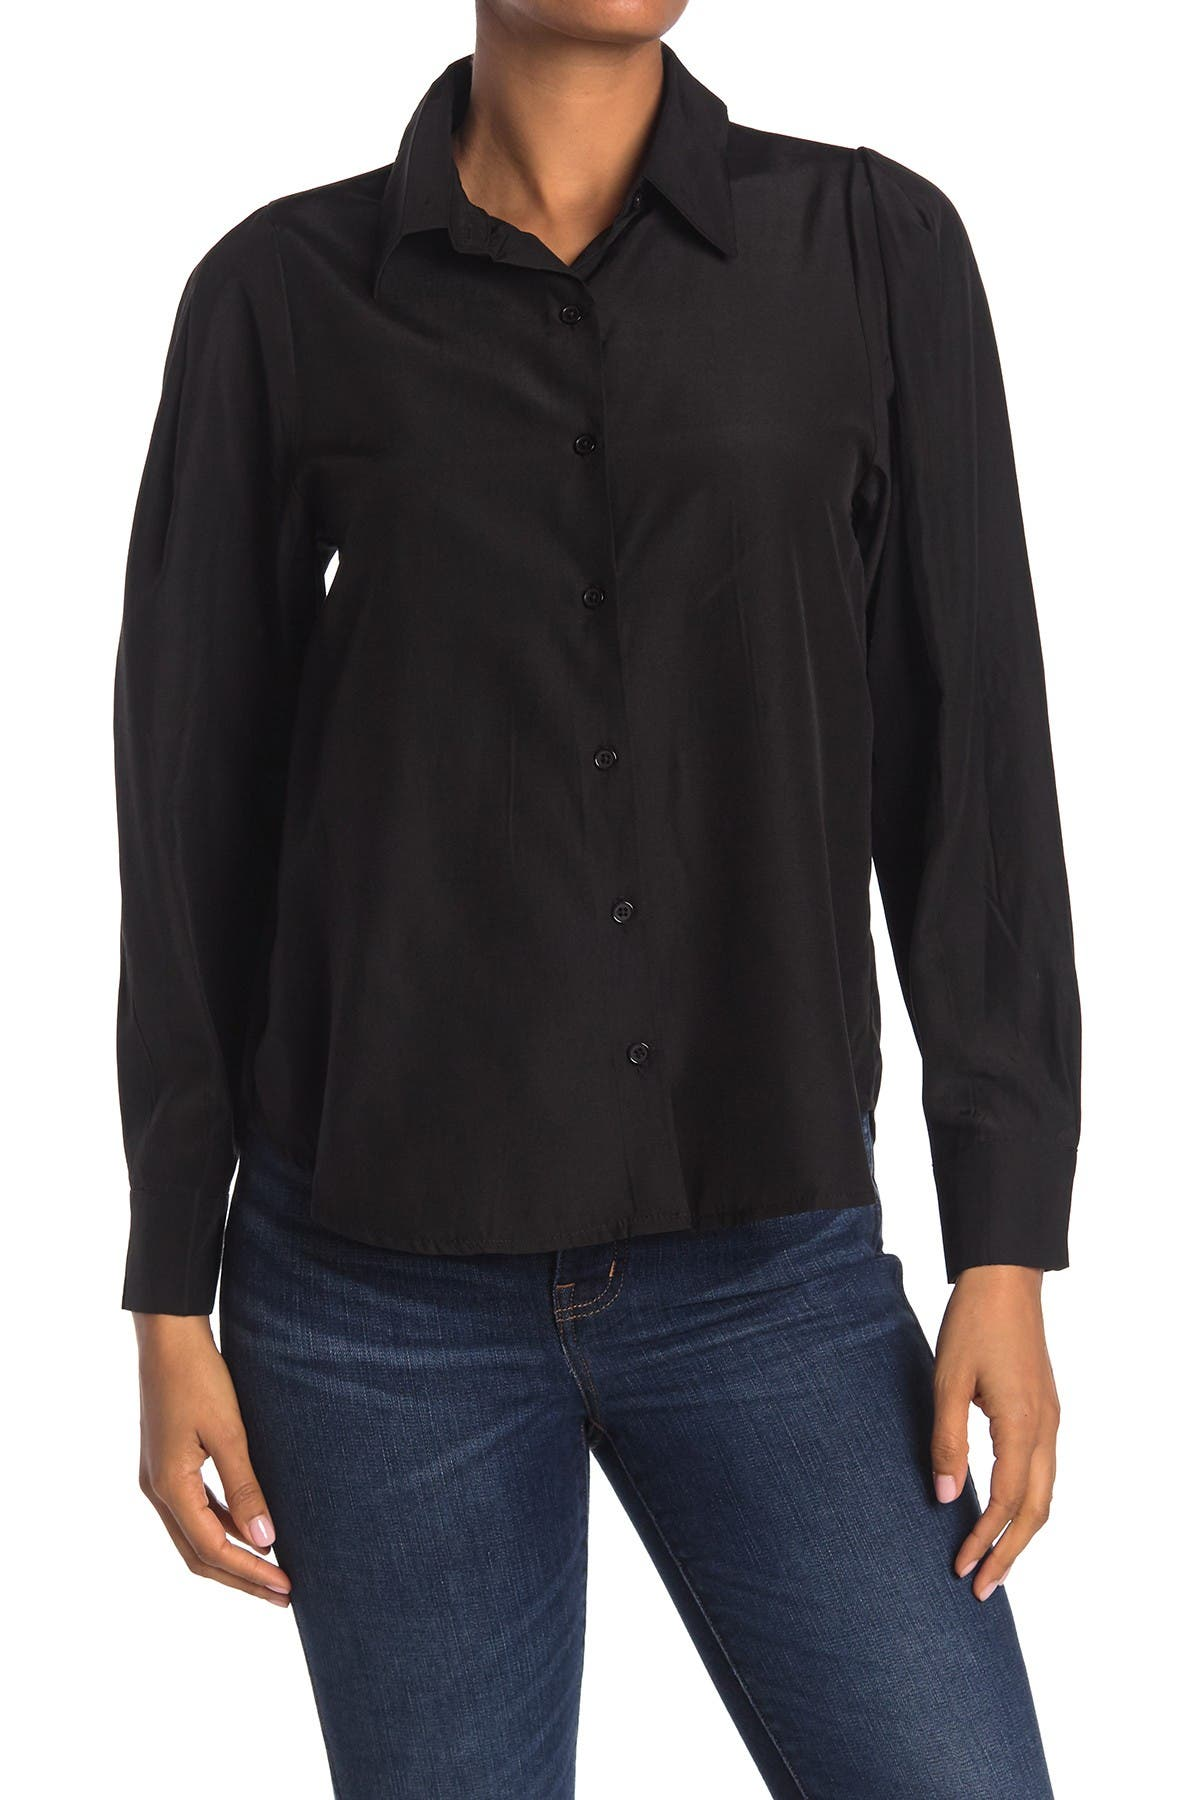 Image of Know One Cares Button Down Puff Long Sleeve Blouse